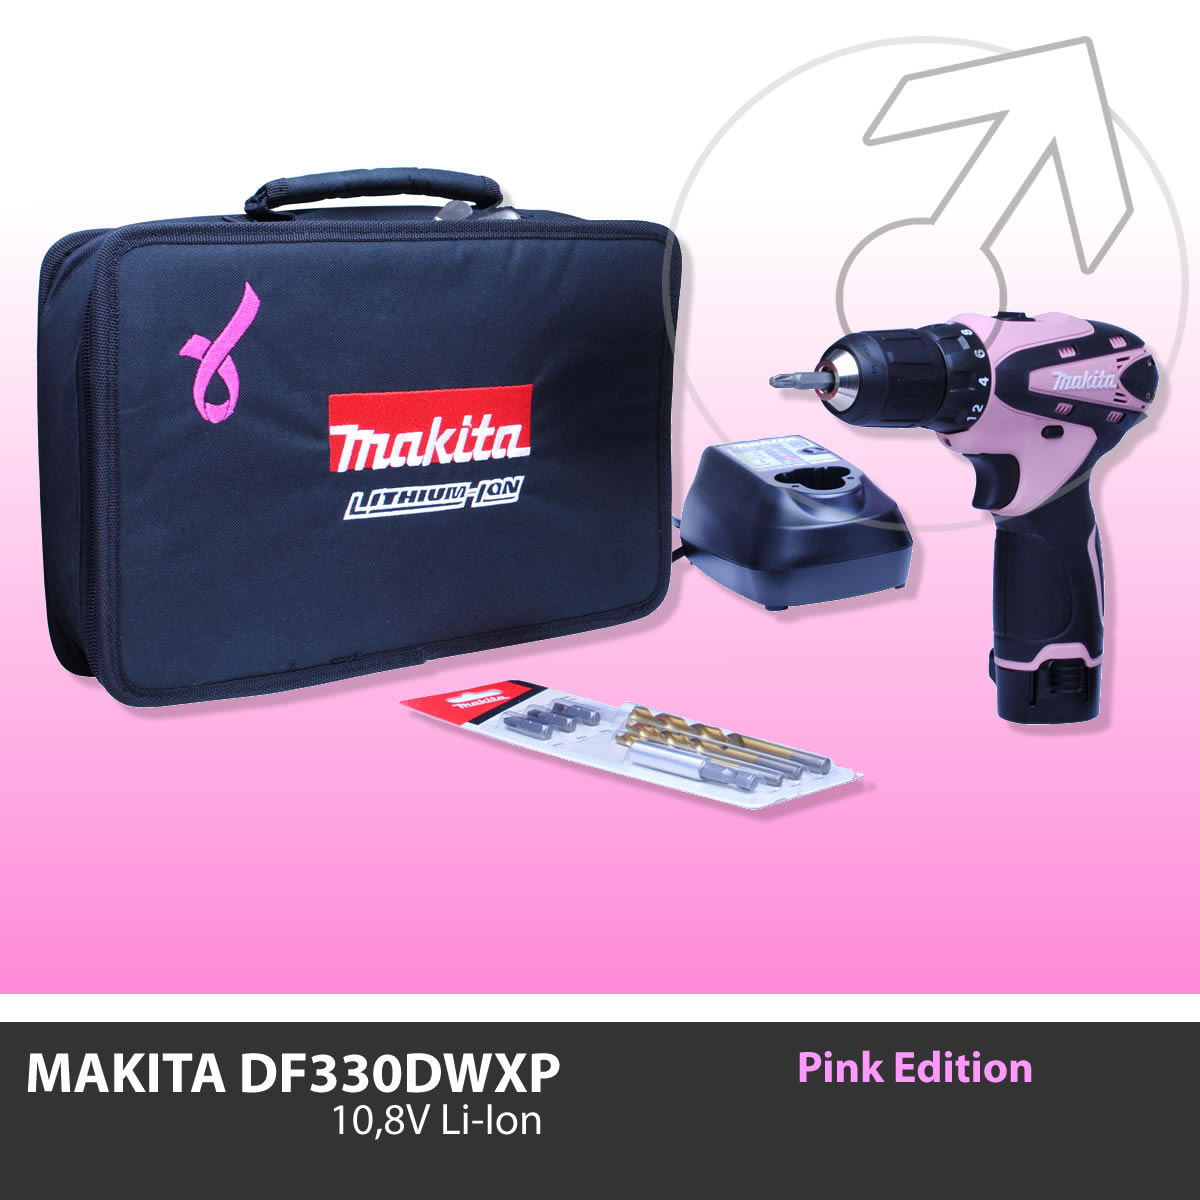 pink edition makita df330 akkuschrauber 10 8v li ion inkl akku lader df330dwxp ebay. Black Bedroom Furniture Sets. Home Design Ideas